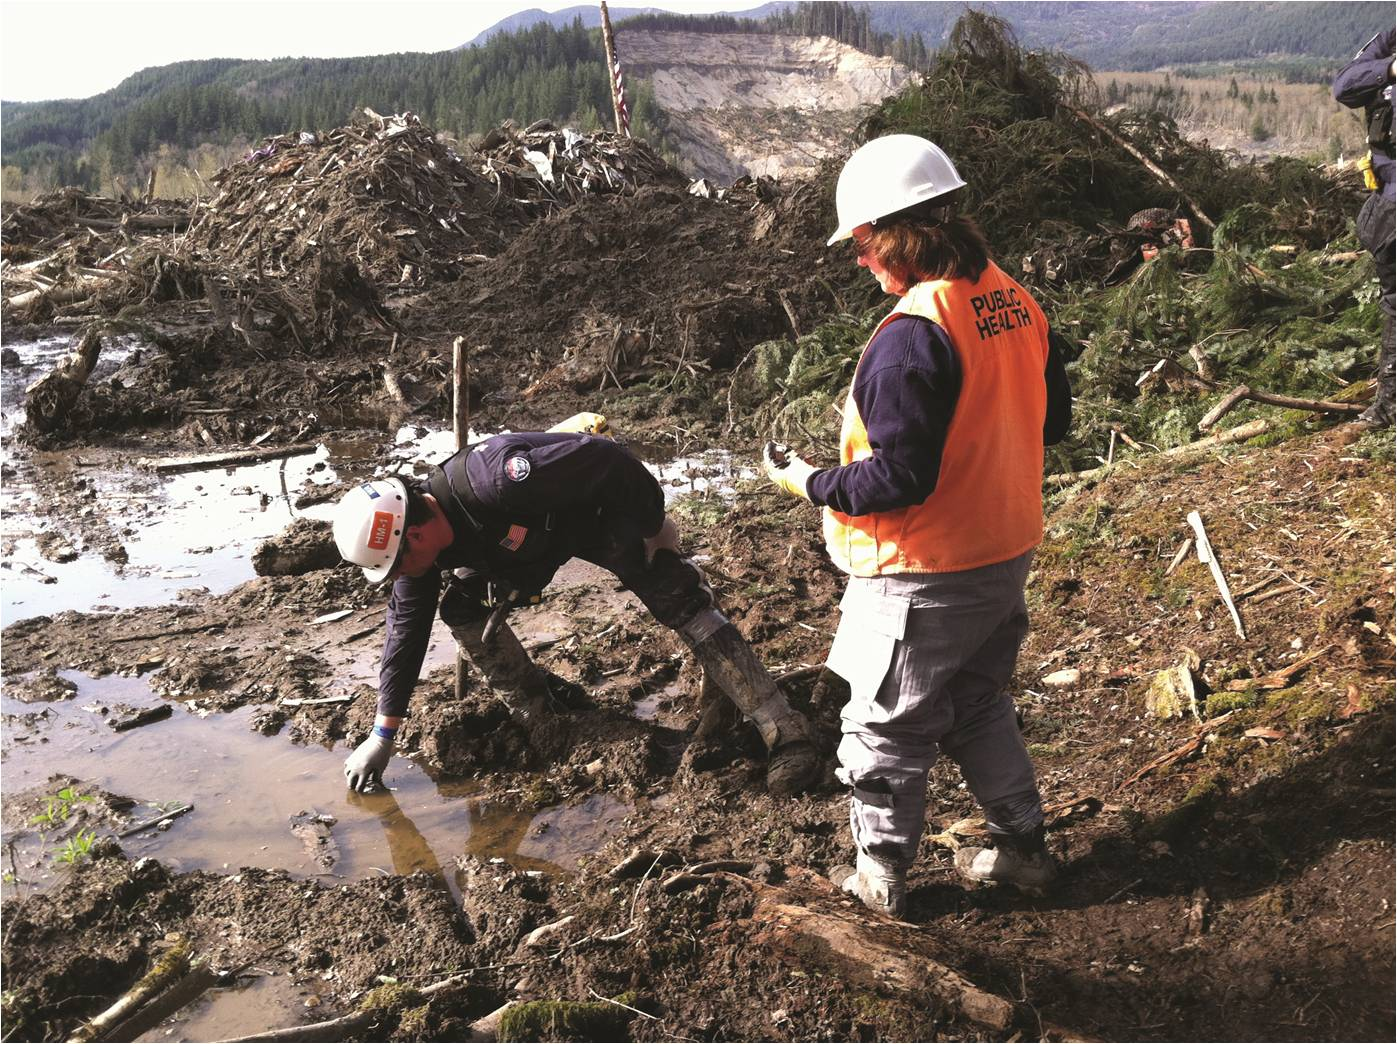 Snohomish Health District Employees conducting emergency response after the Oso mudslide. PHOTO CREDIT: Snohomish Health District